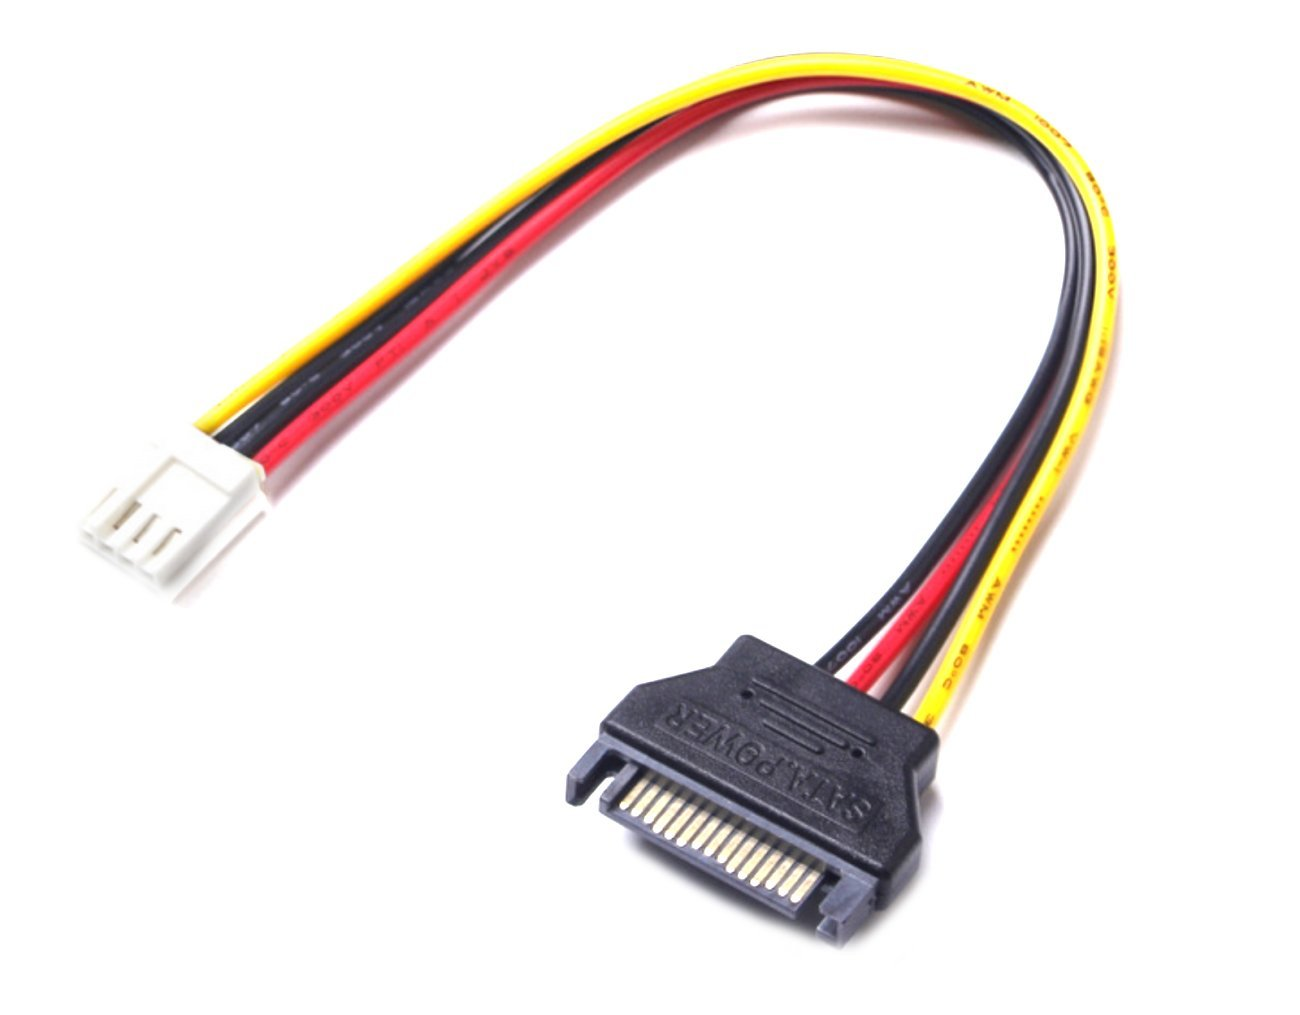 15pin SATA Male to 4pin Floppy FDD Female Power Converter Adapter Cable winwill E807